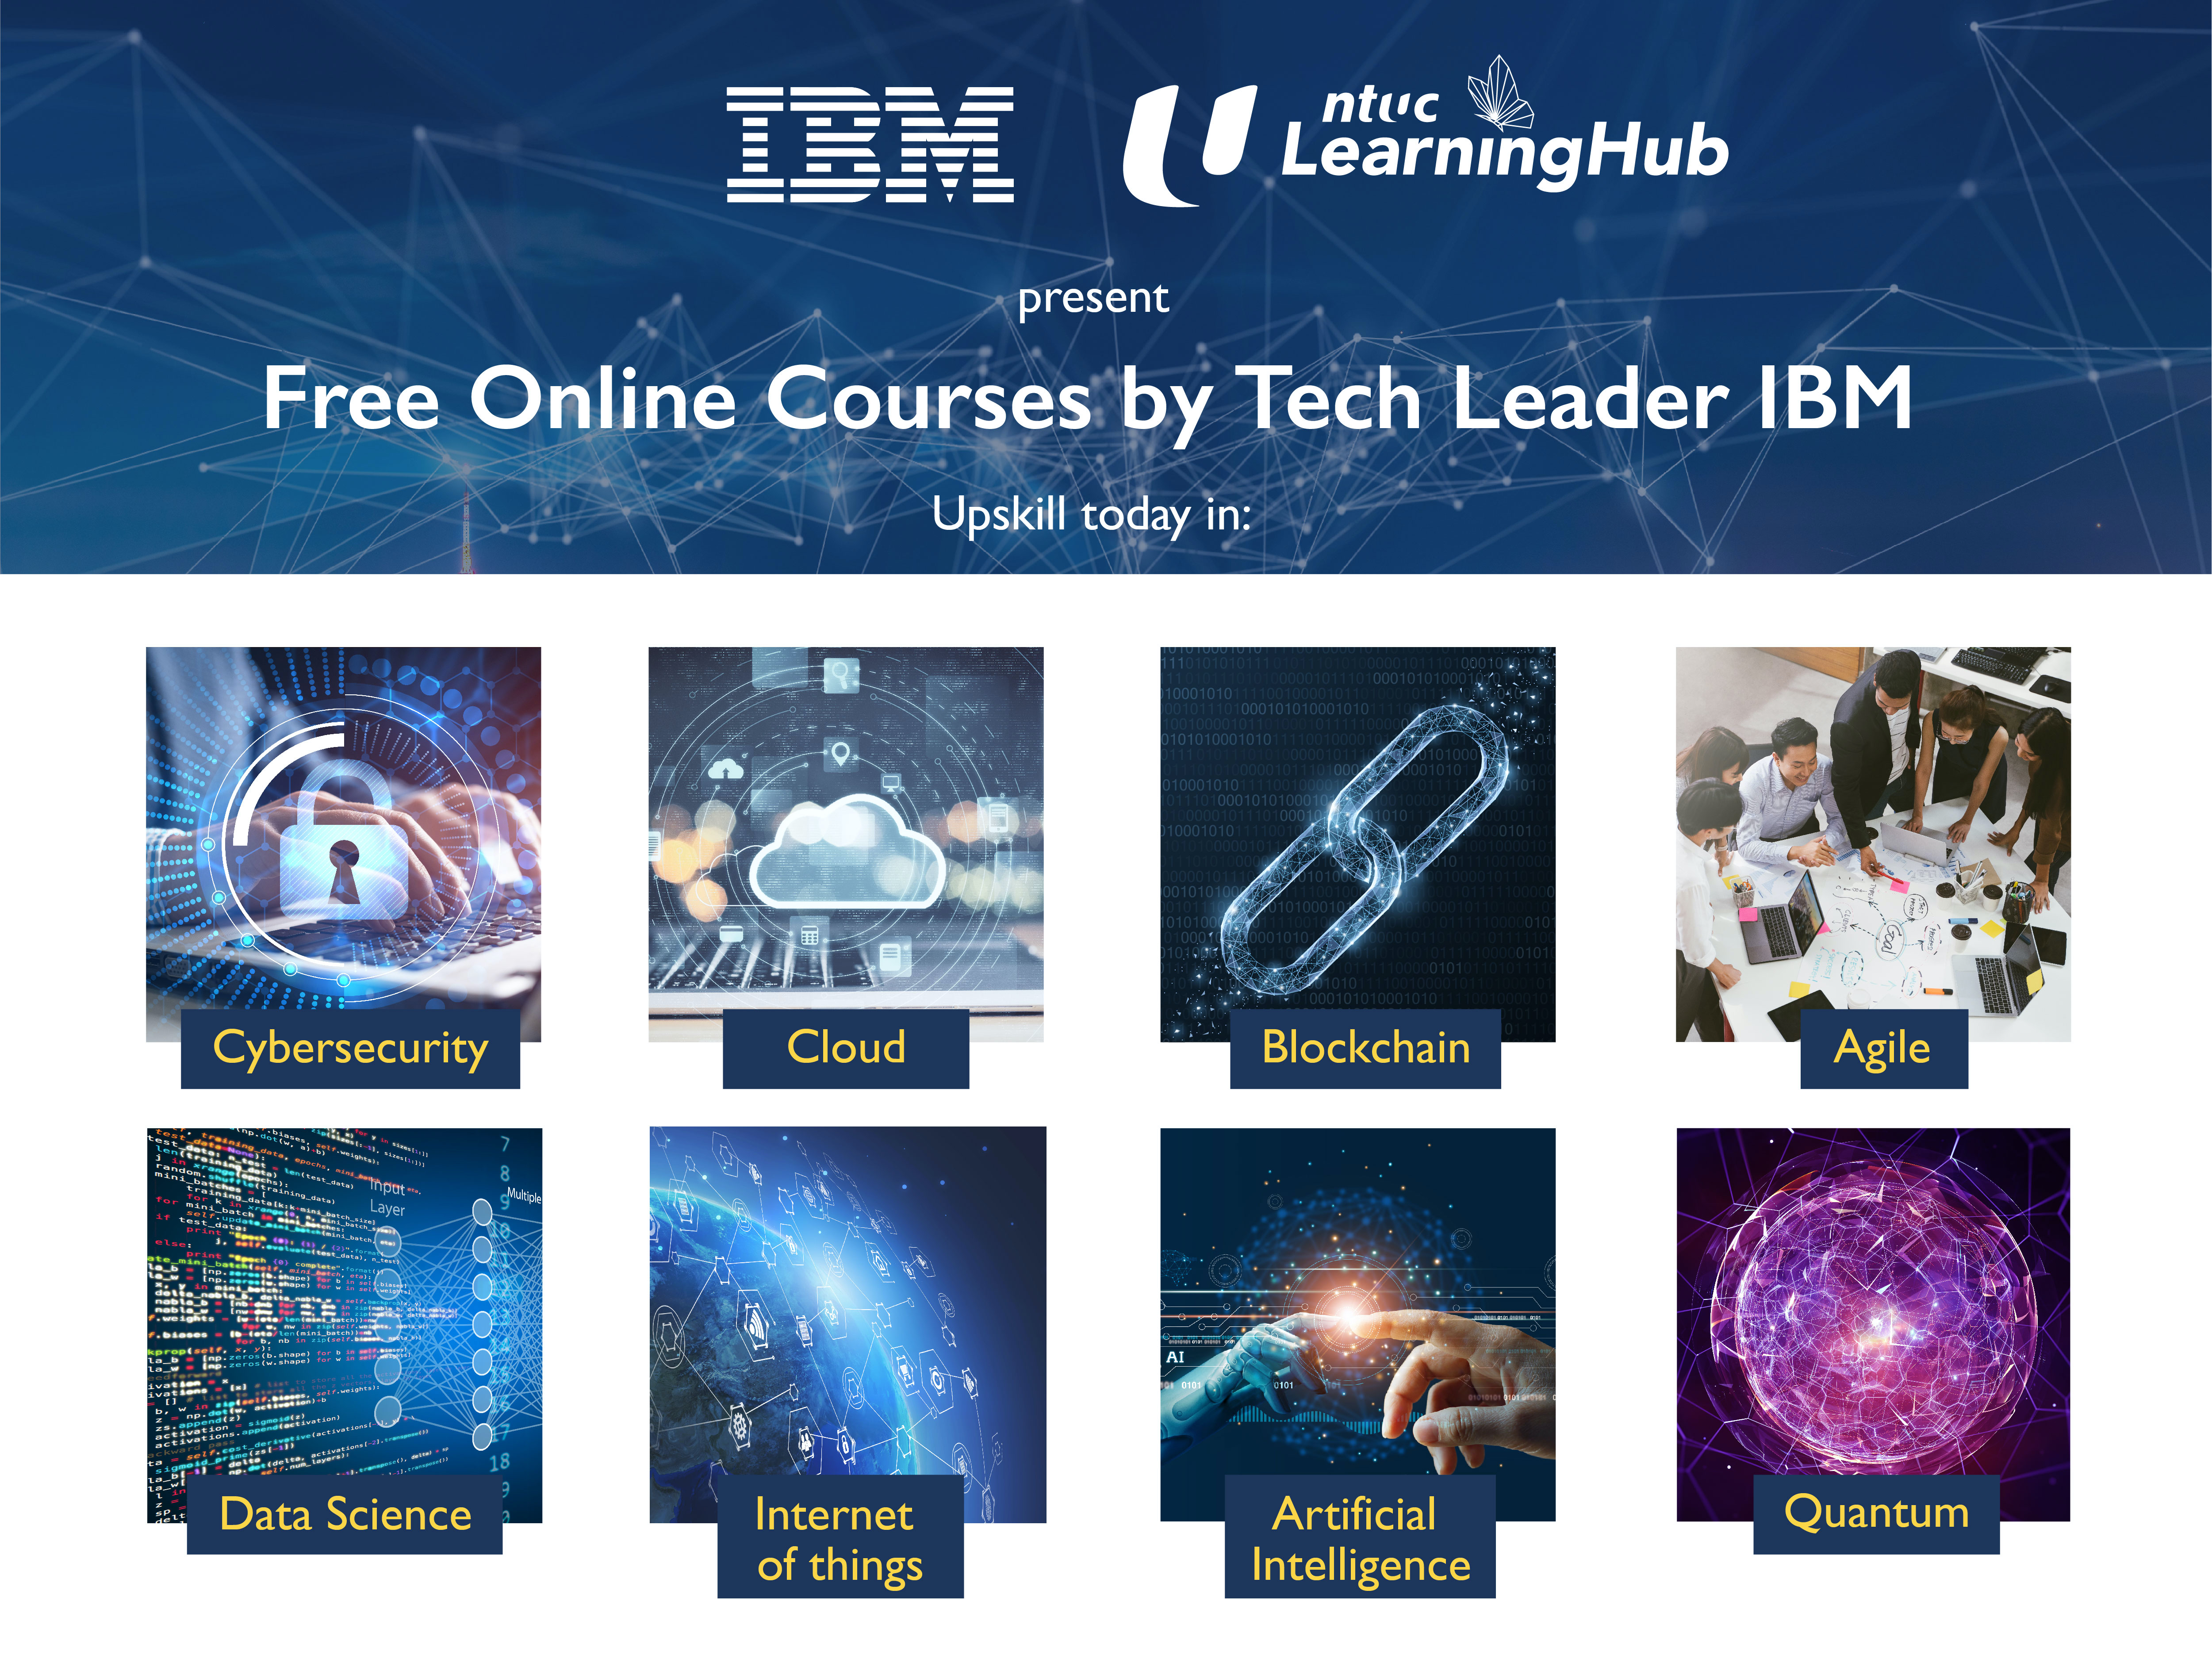 IBM Collaborates with NTUC Learninghub to Close Digital Skills Gaps in Singapore Through Free Online Courses in Technology